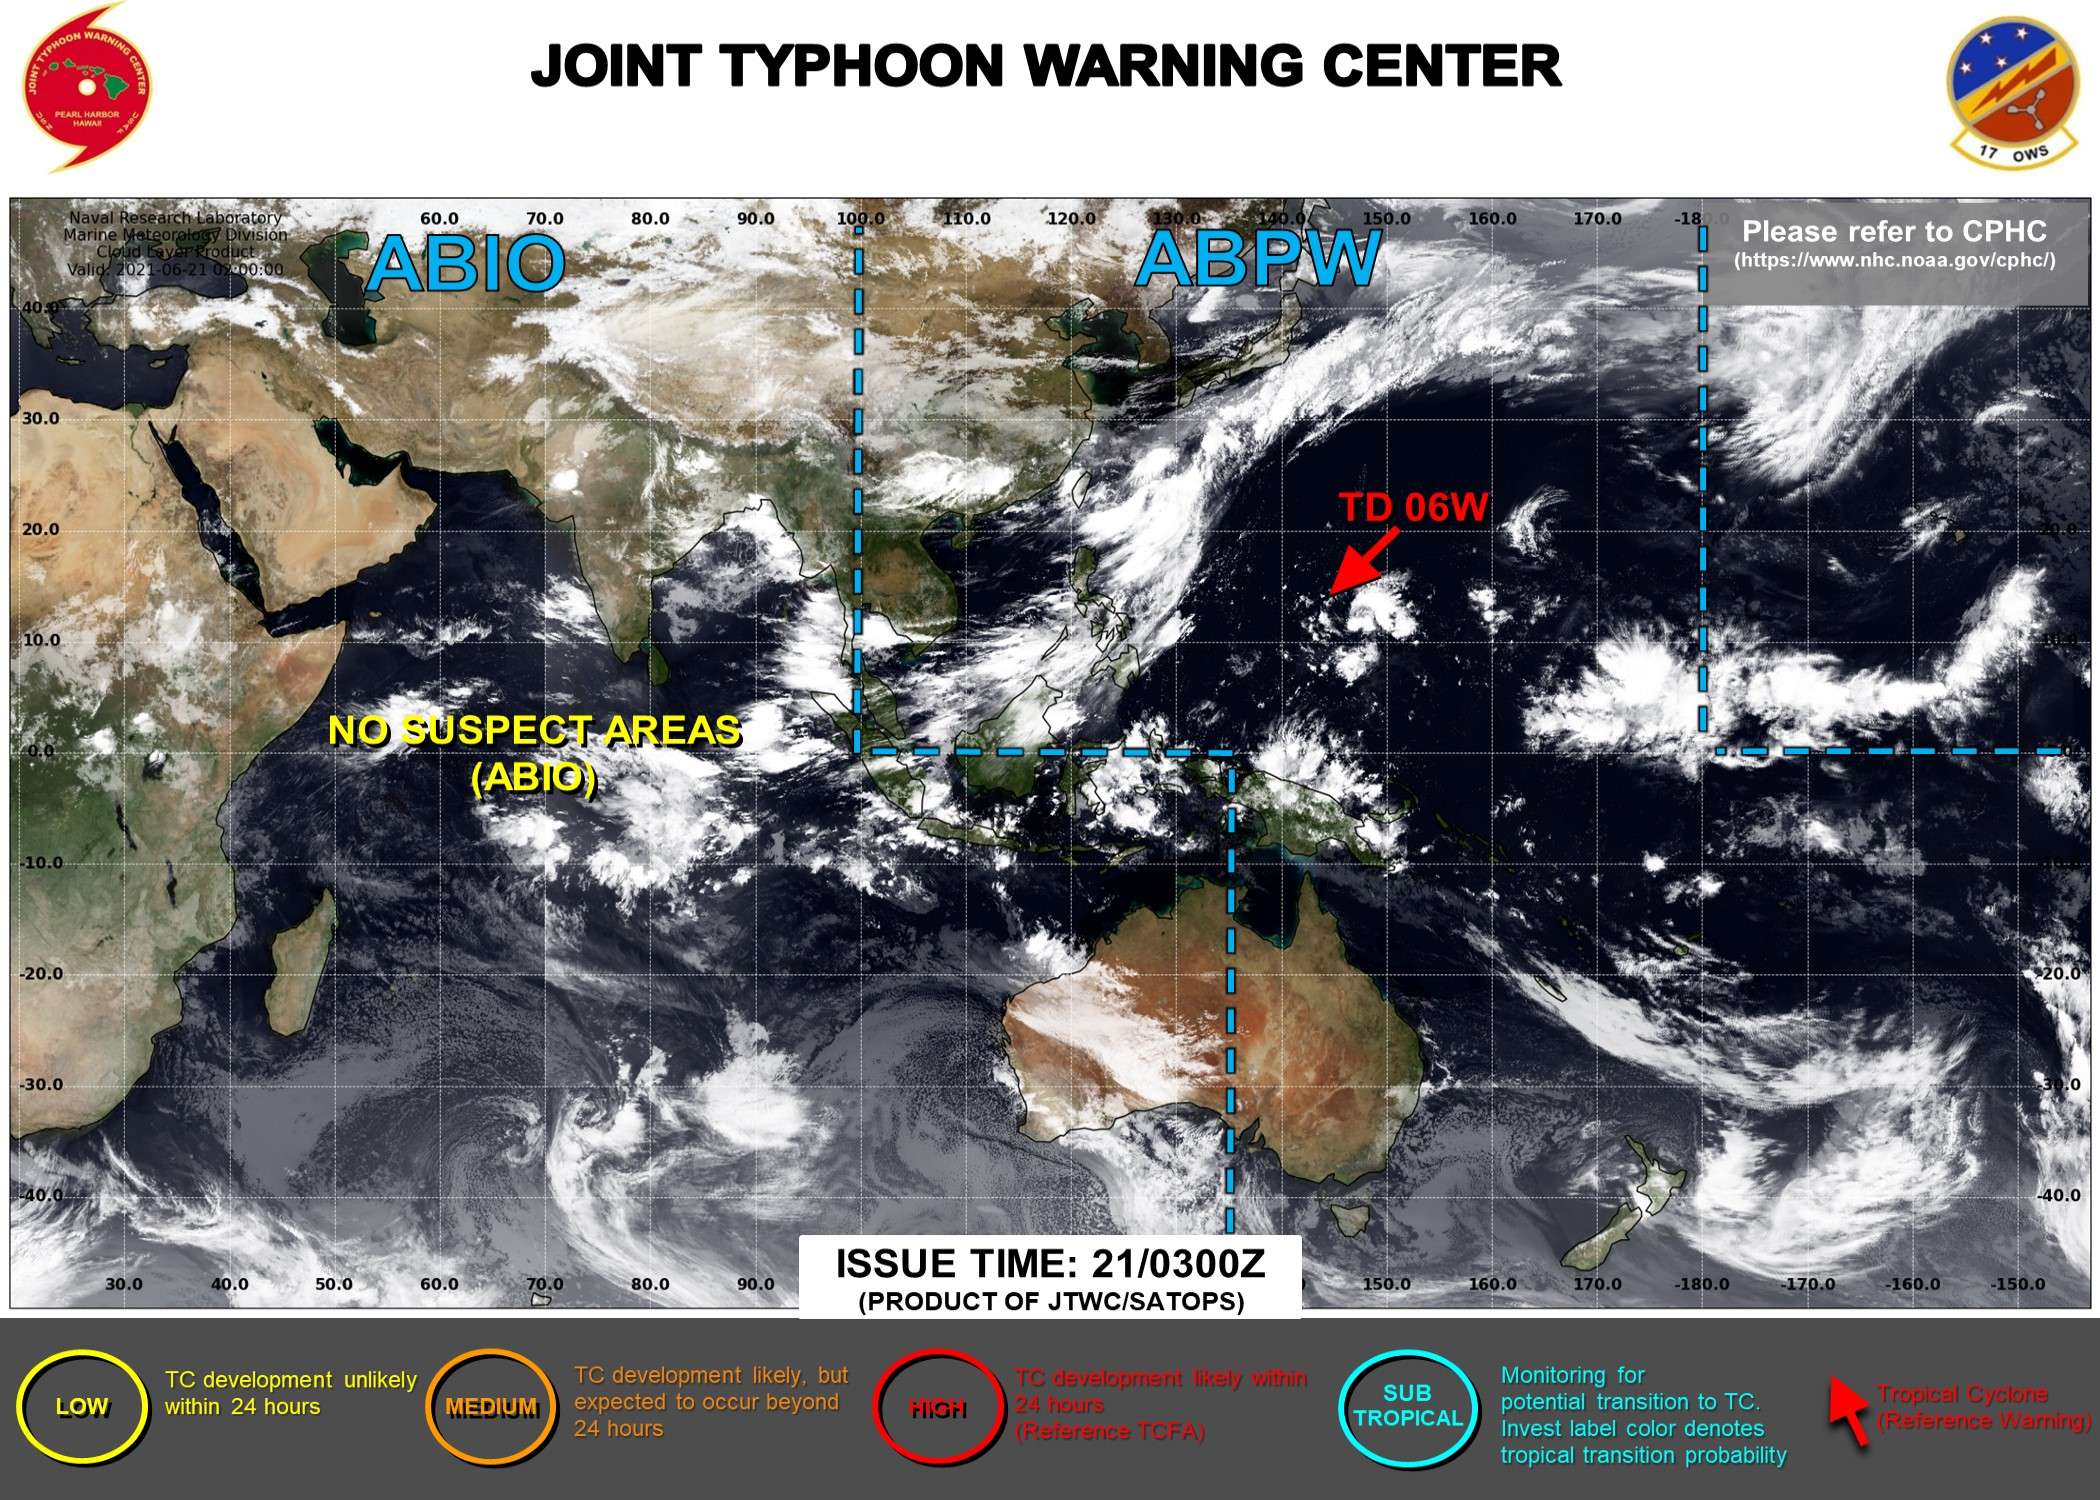 THE JTWC IS ISSUING 6HOURLY WARNINGS AND 3HOURLY SATELLITE BULLETINS ON 06W.